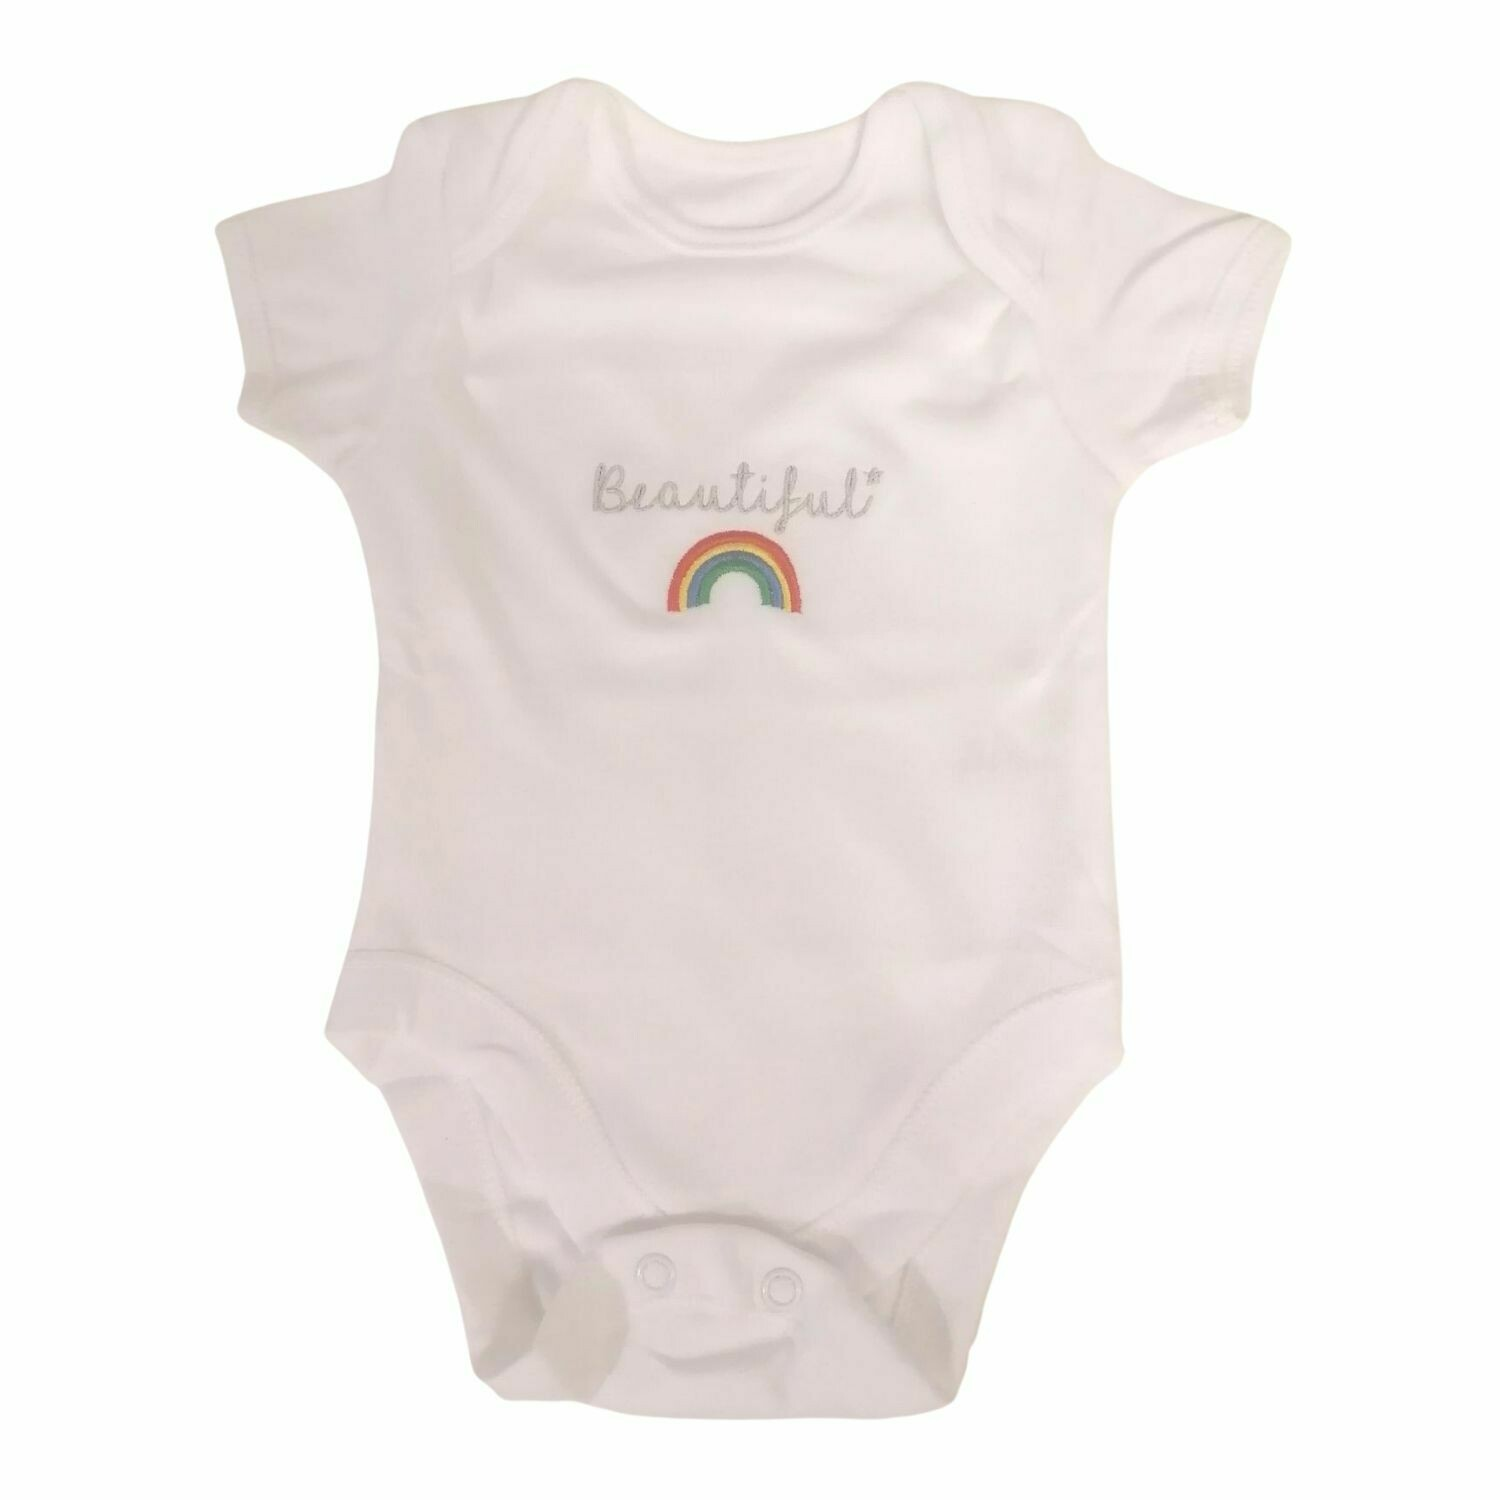 Personalised Baby Grow with Name & Rainbow